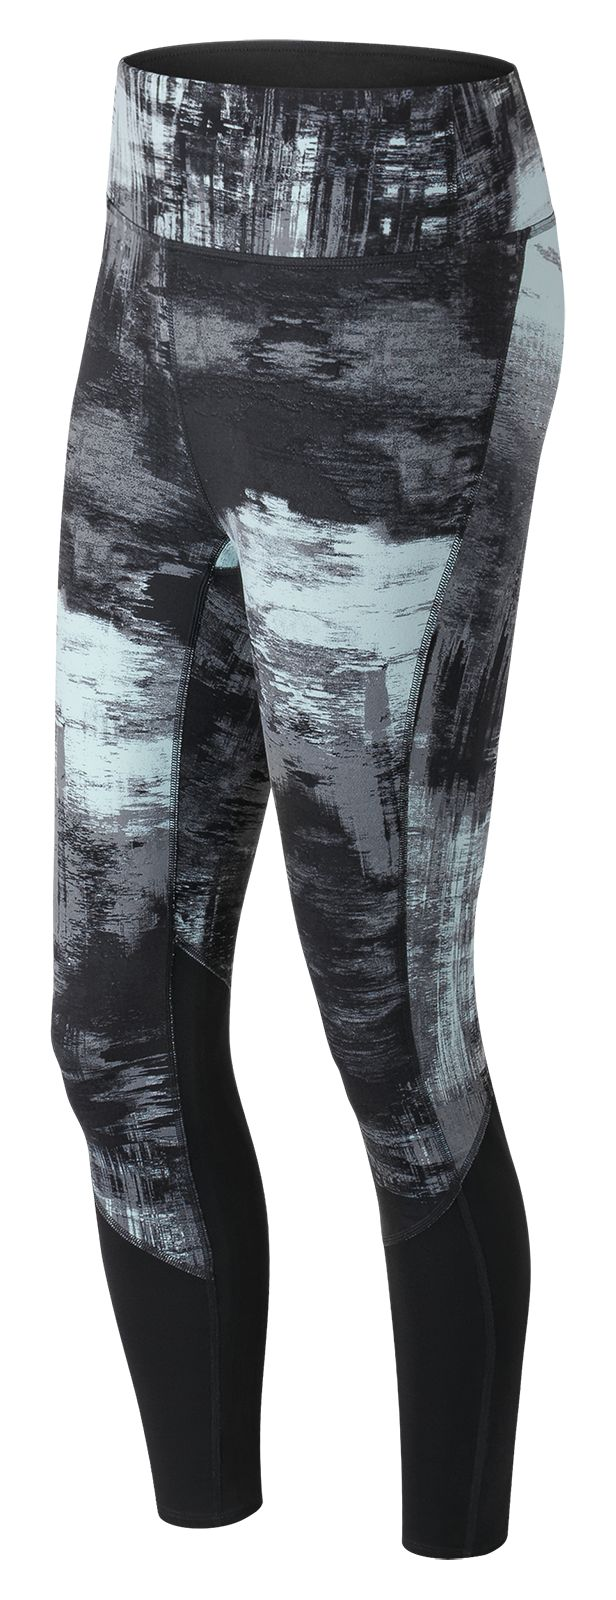 NB Elixir Printed Tight, Water Vapor Multi with Black